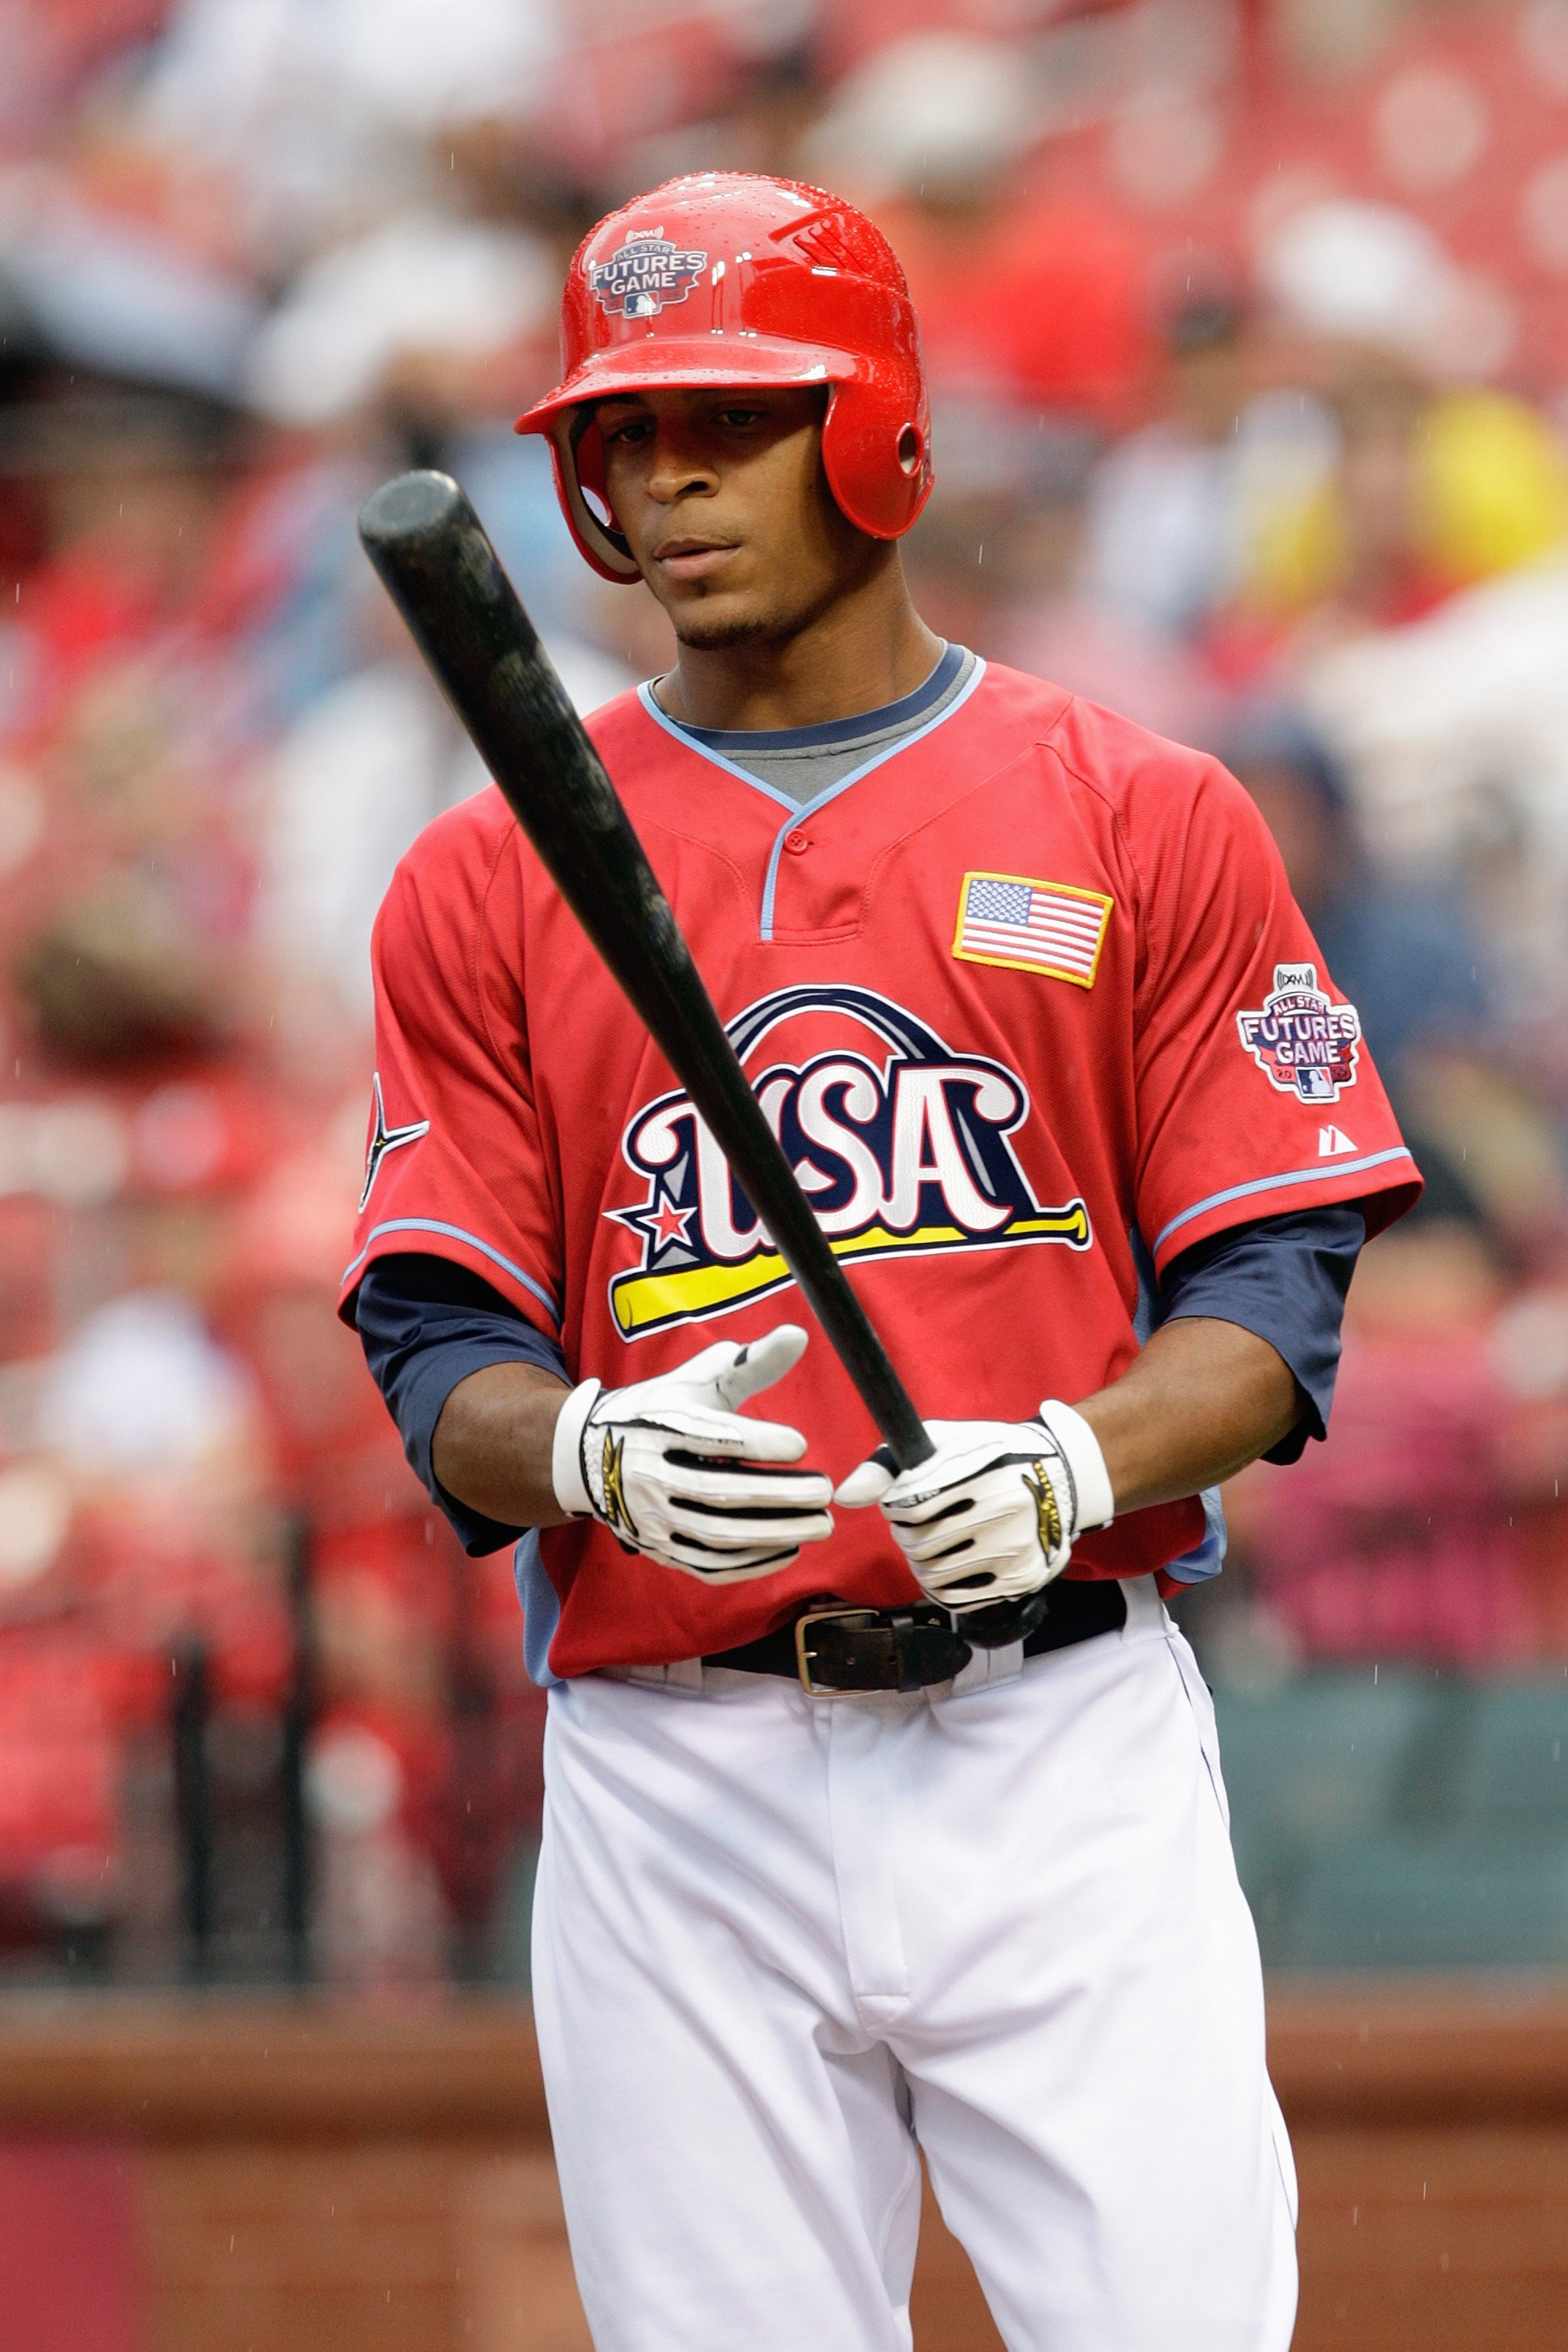 ST. LOUIS, MO - JULY 12: U.S. Futures All-Star Desmond Jennings of the Tampa Bay Rays stands at the plate during the 2009 XM All-Star Futures Game at Busch Stadium on July 12, 2009 in St. Louis, Missouri. (Photo by Jamie Squire/Getty Images)